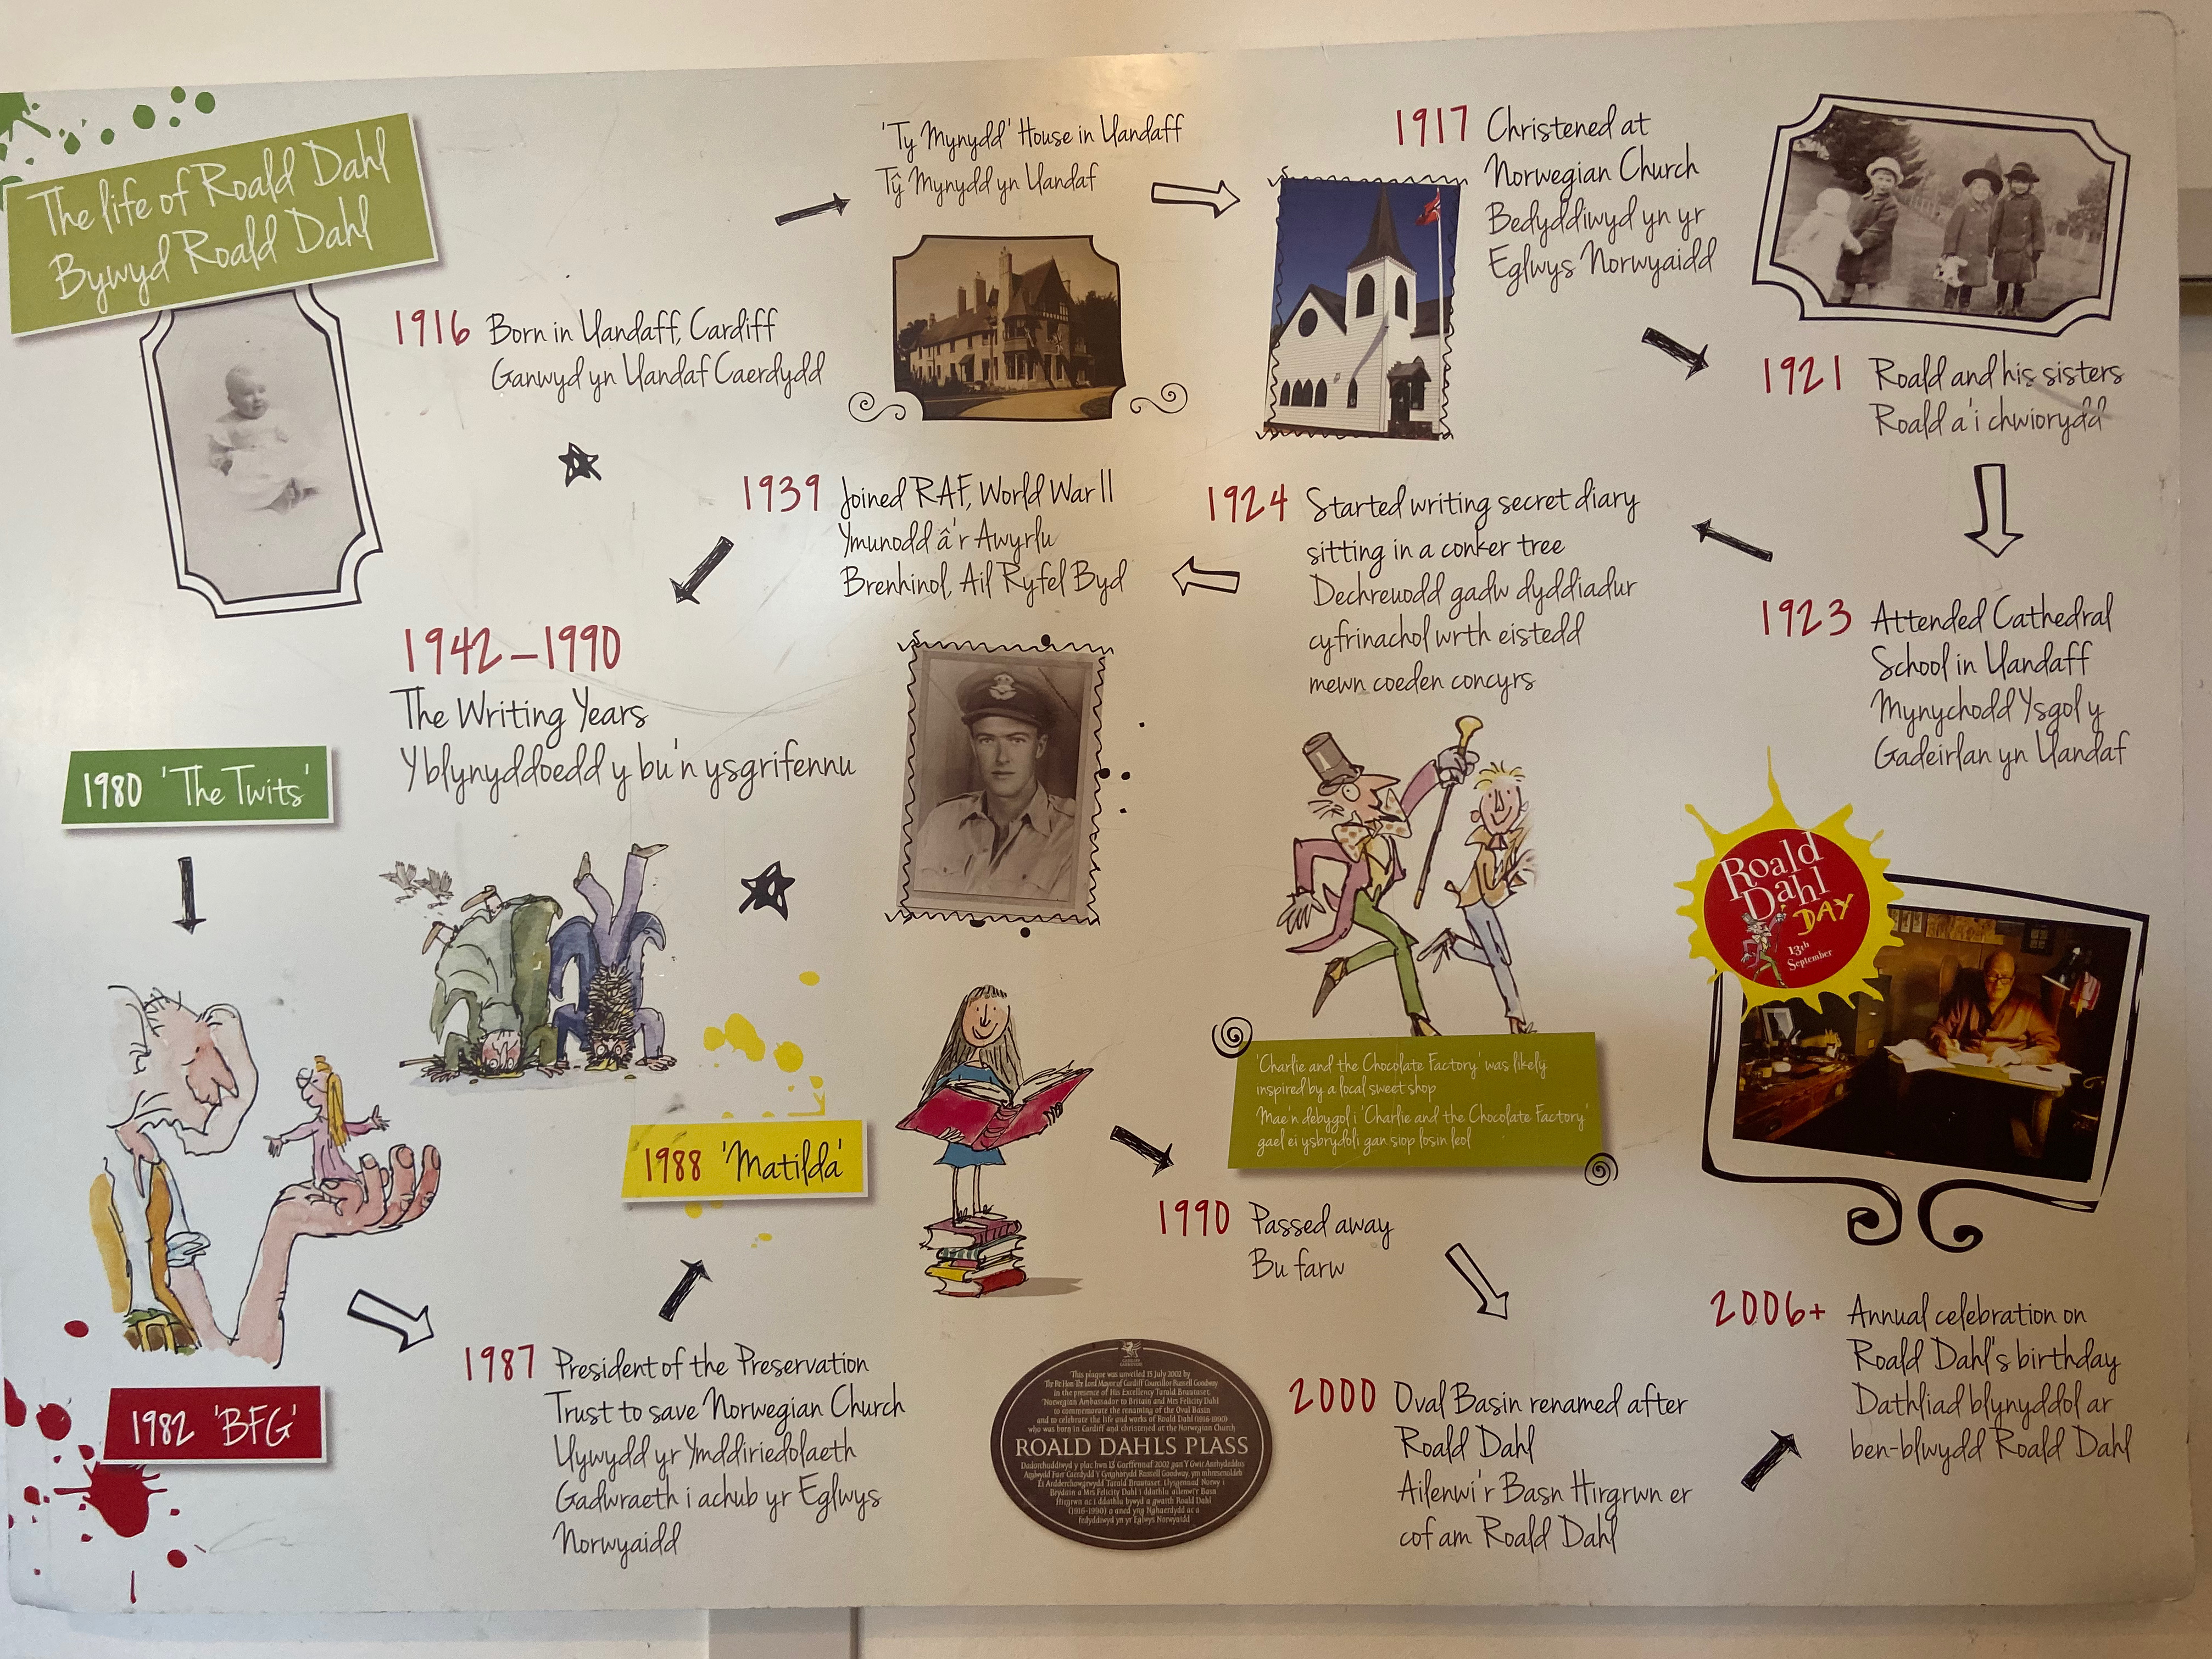 A wall feature displays a timeline of Roald Dahl's life and links to Cardiff